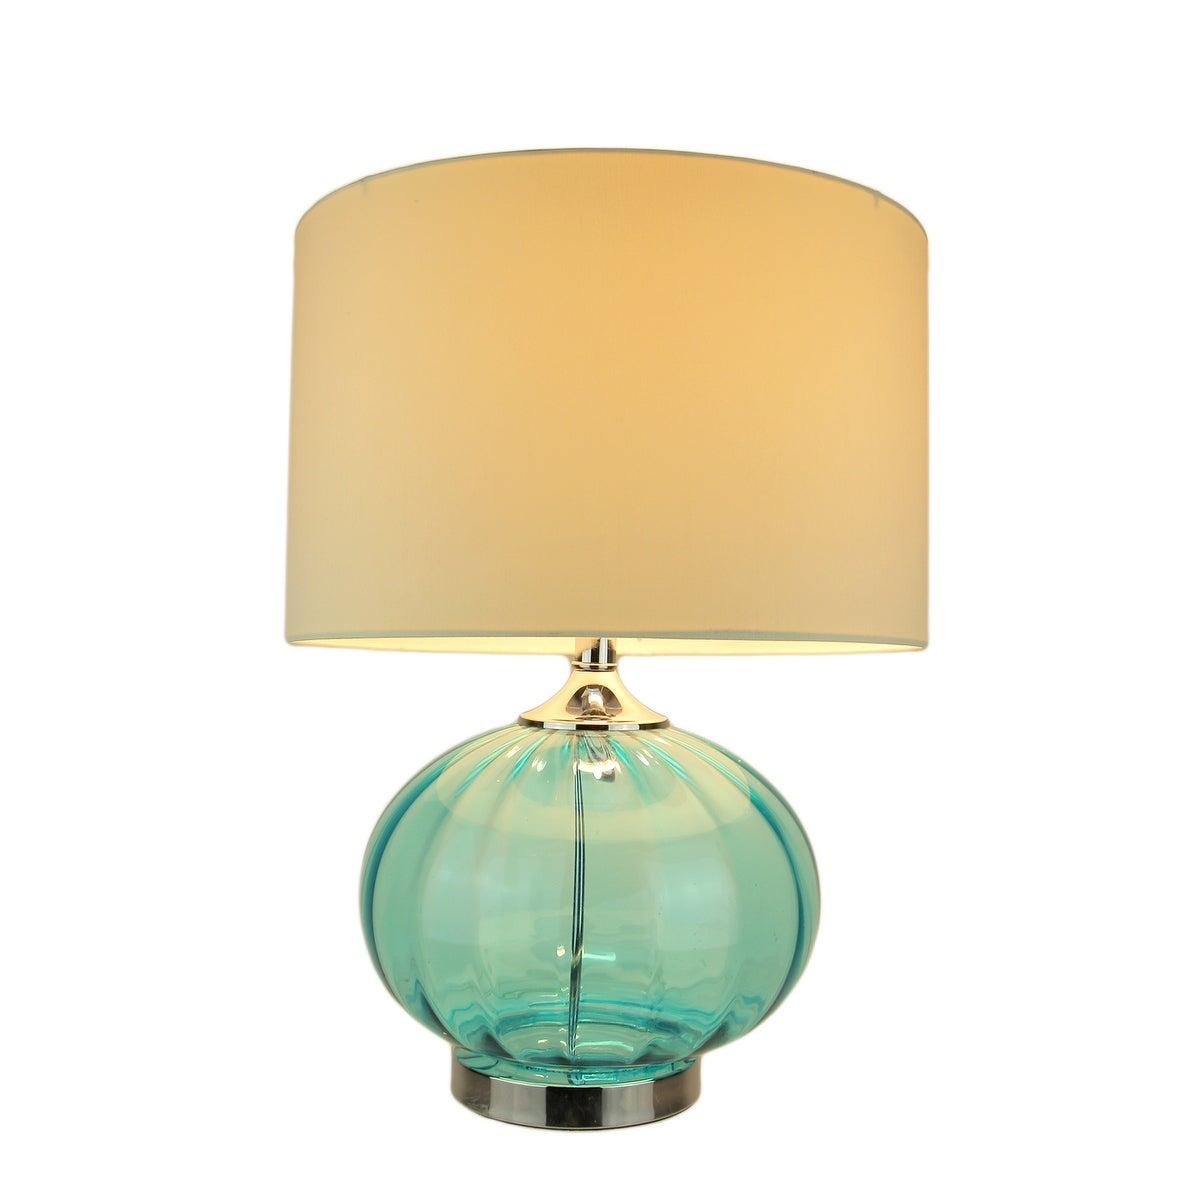 Shop New Port Sea Blue Glass Metal Table Lamp 22 In Tall 15 In White Linen Shade 22 X 15 X 15 Inches Overstock 18796149